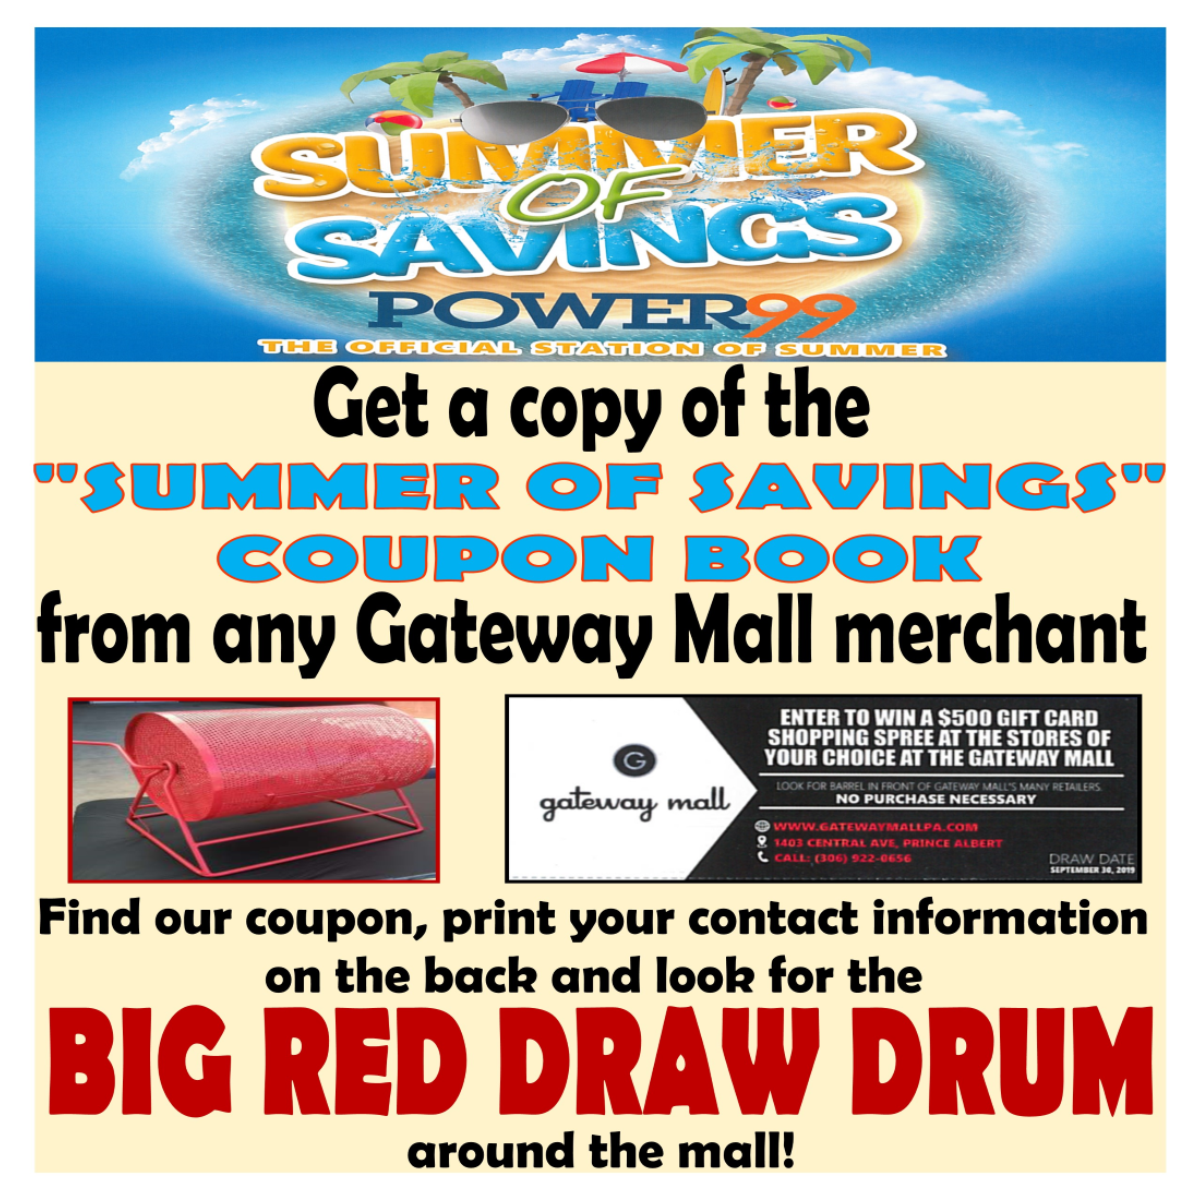 5x5 Summer of Savings Coupon Book for website.png